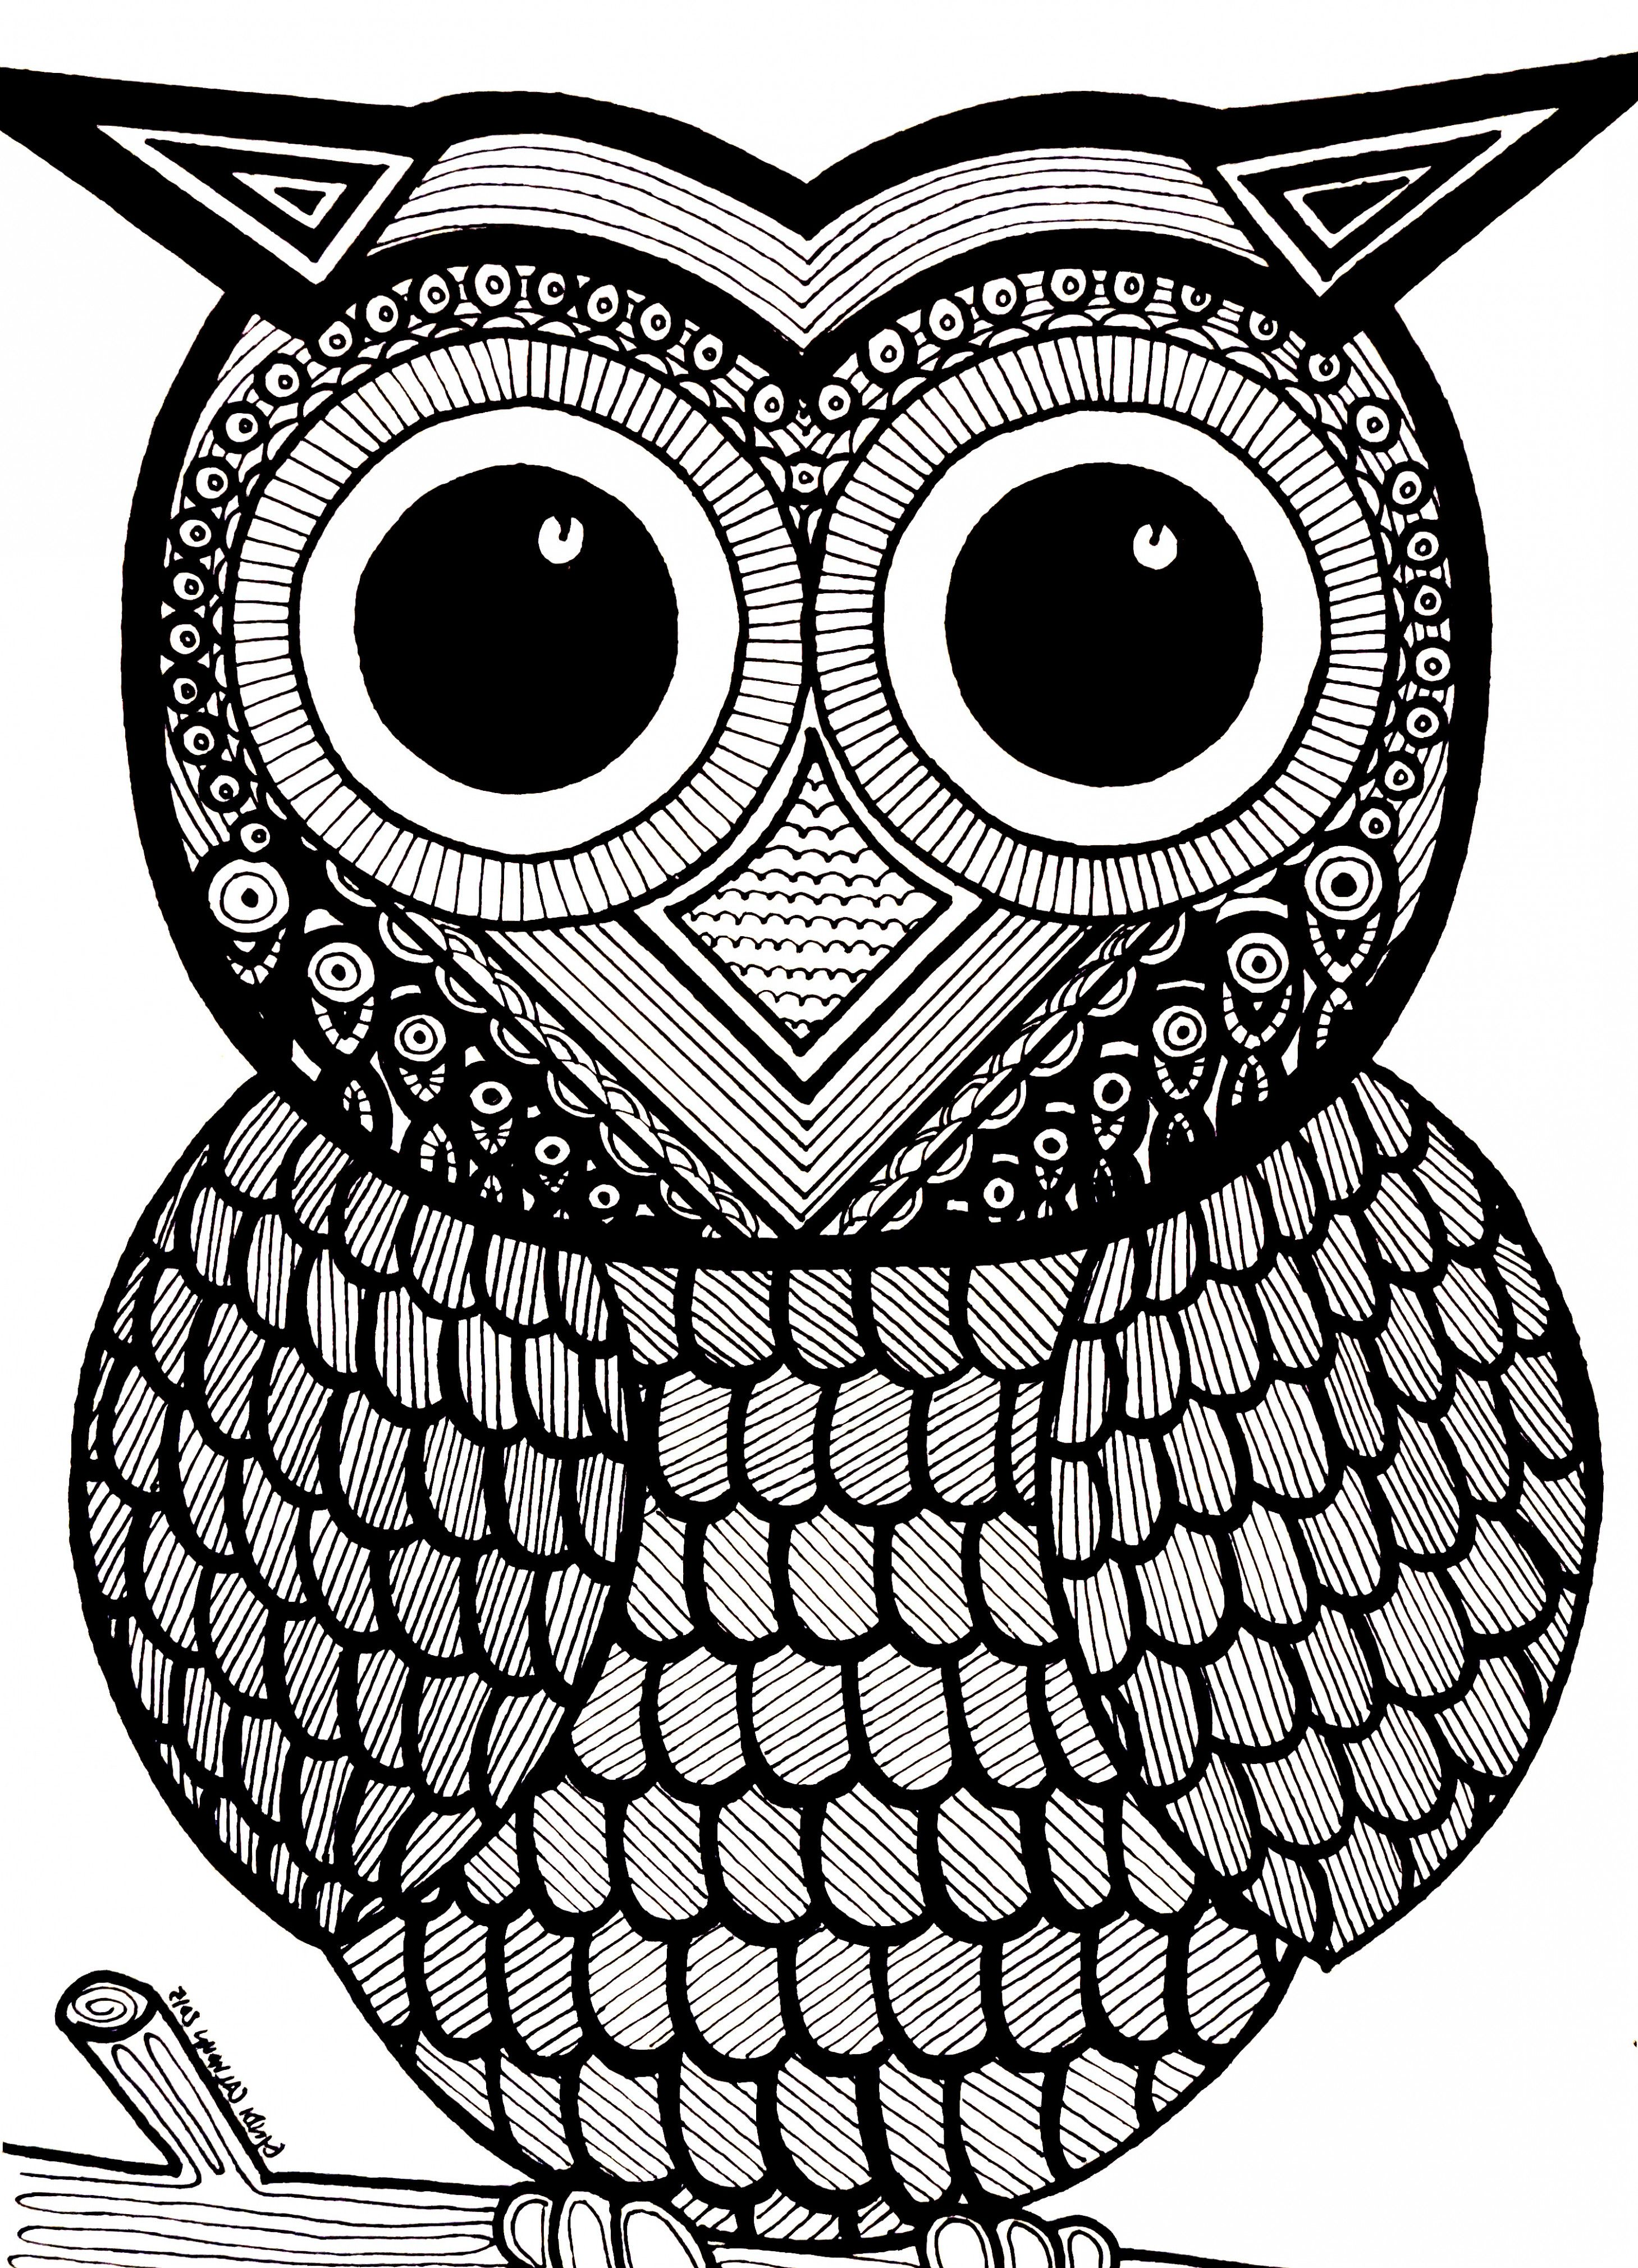 15 Moments That Basically Sum Up Your Coloring Pages For Sharpies Experience Coloring Owl Coloring Pages Animal Coloring Pages Coloring Pages